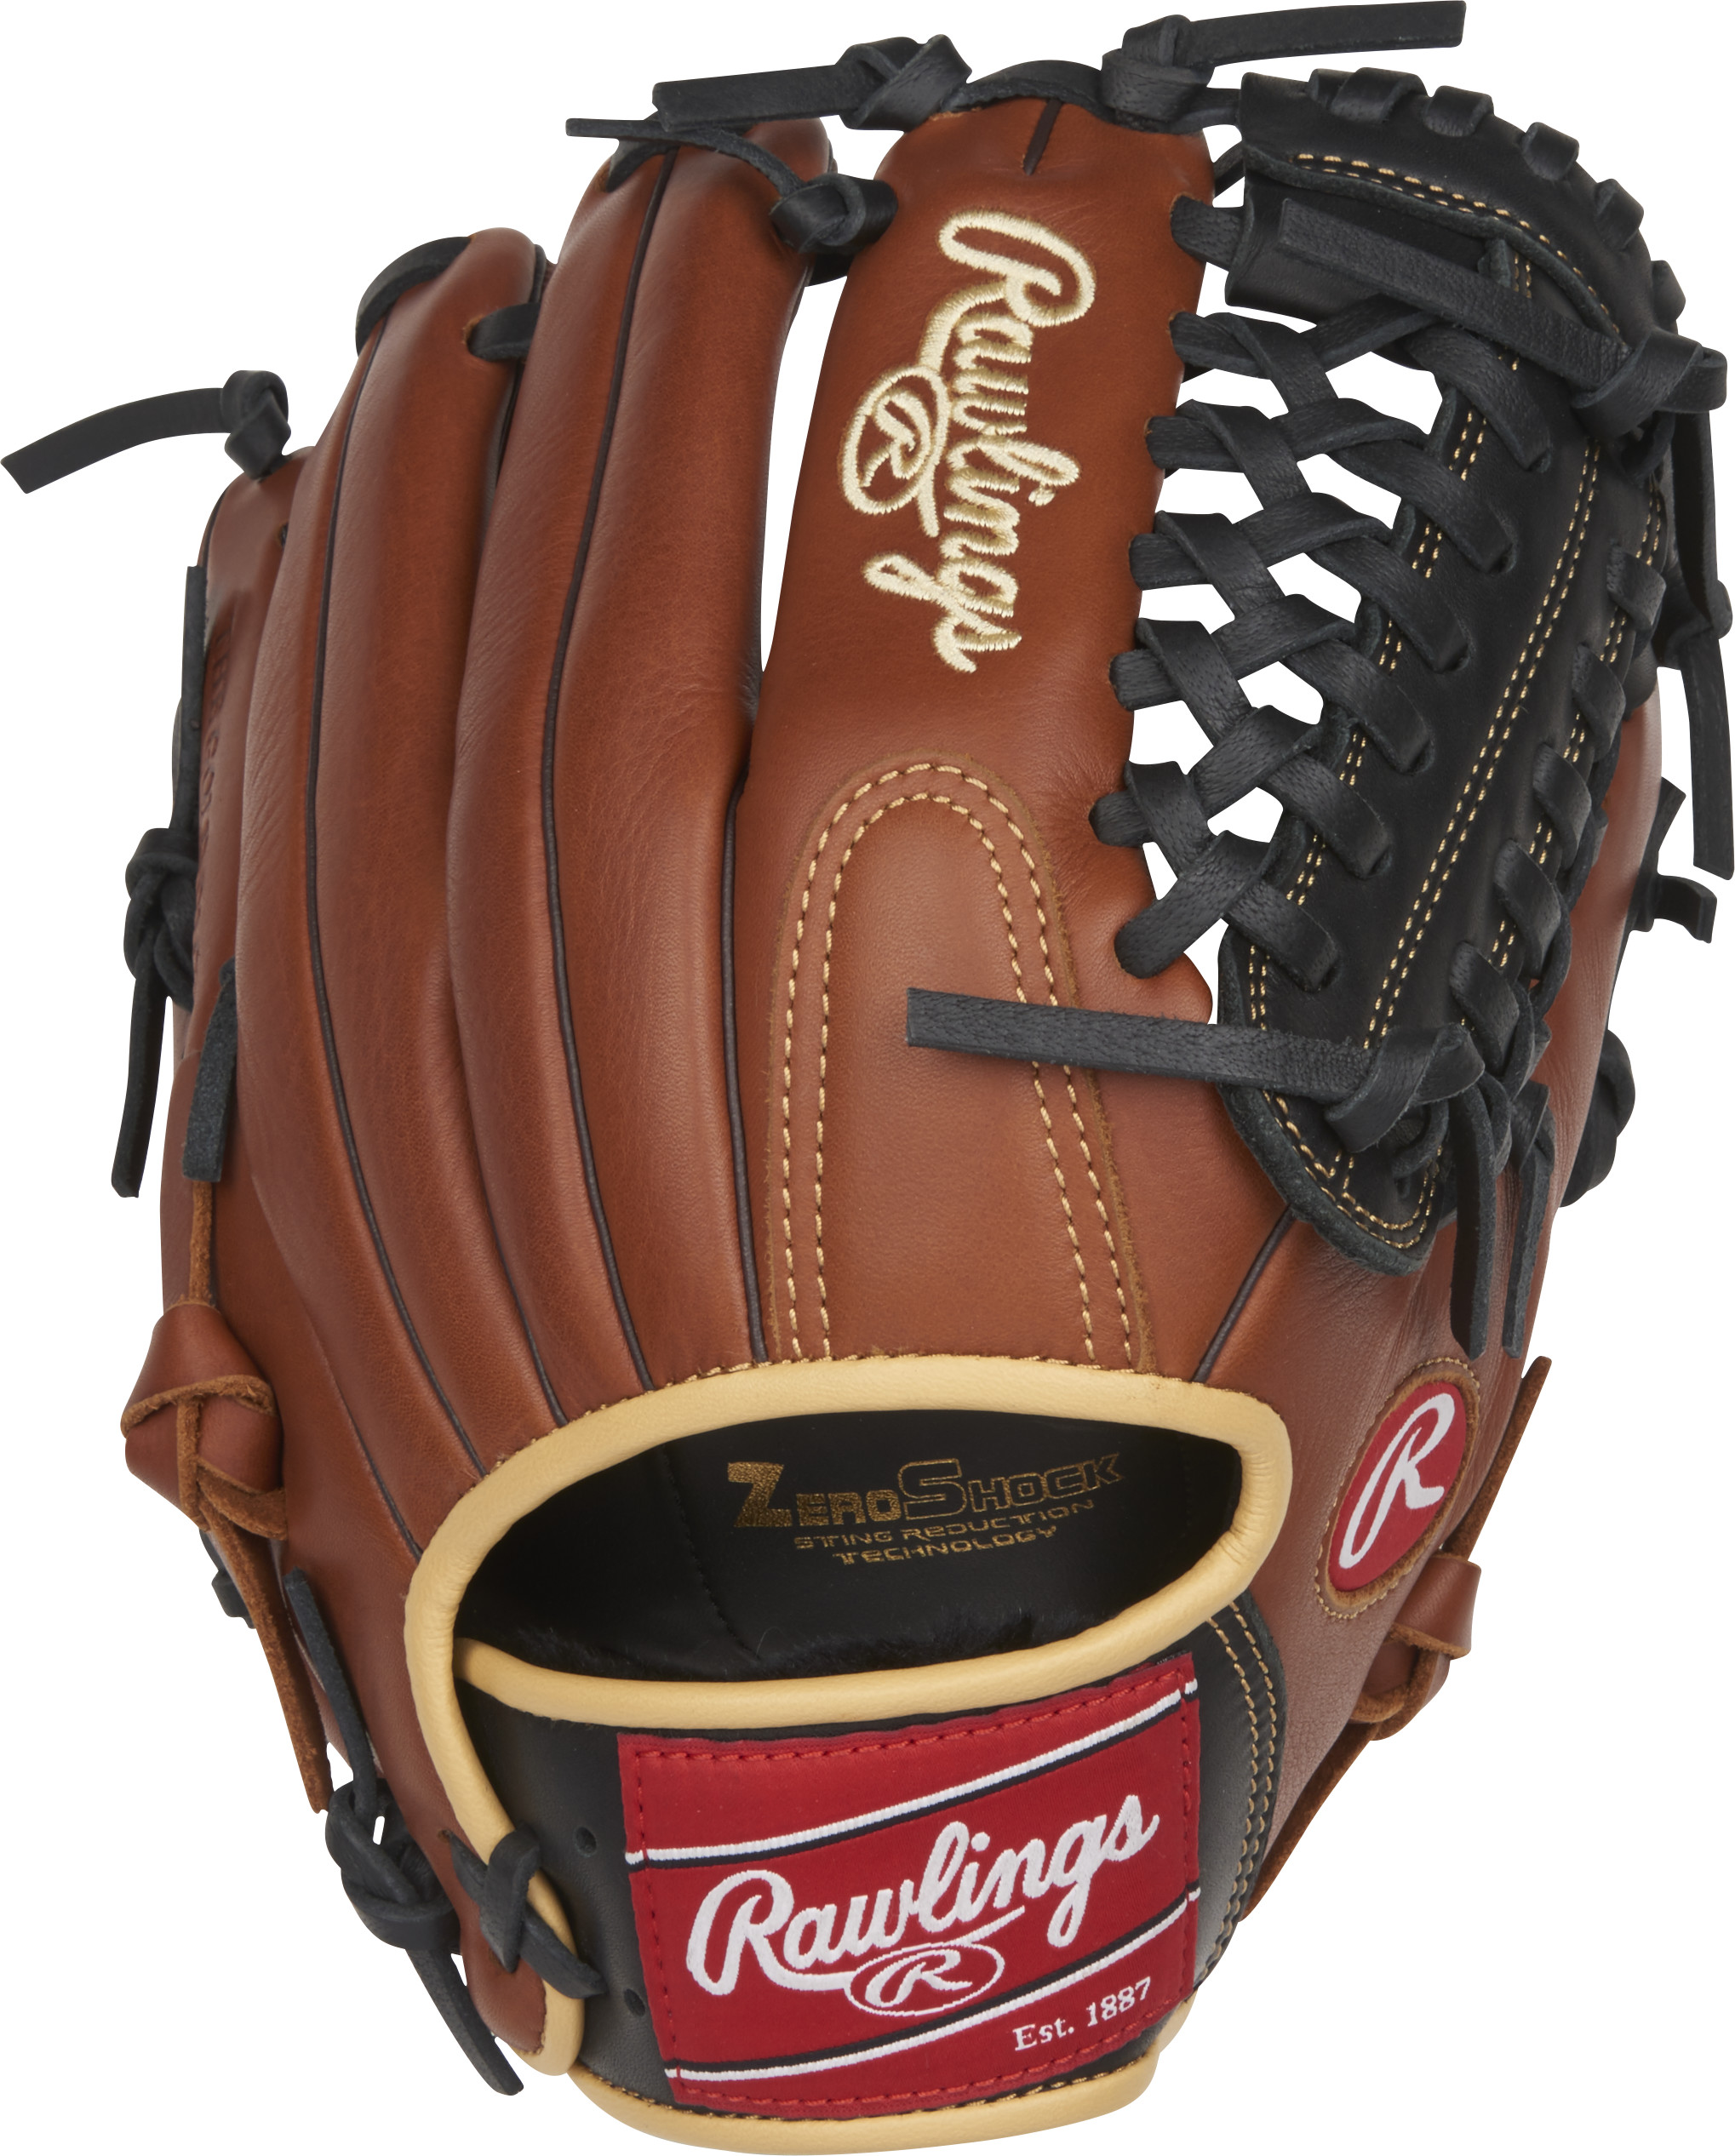 http://www.bestbatdeals.com/images/gloves/rawlings/S1175MT-2.jpg